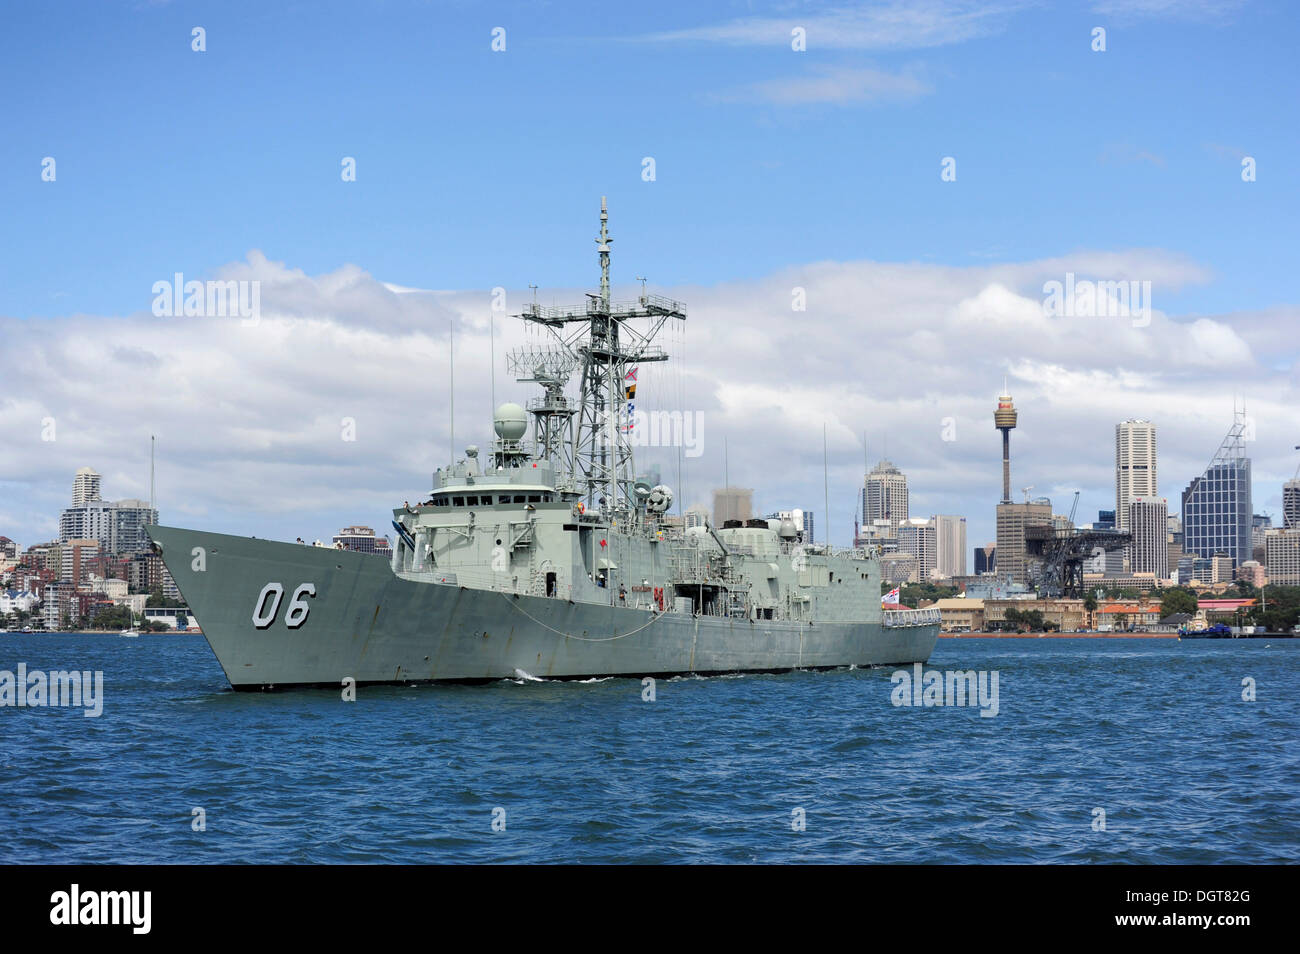 Warship of the Australian Navy in Sydney Harbour, Sydney, New South Wales, NSW, Australia - Stock Image